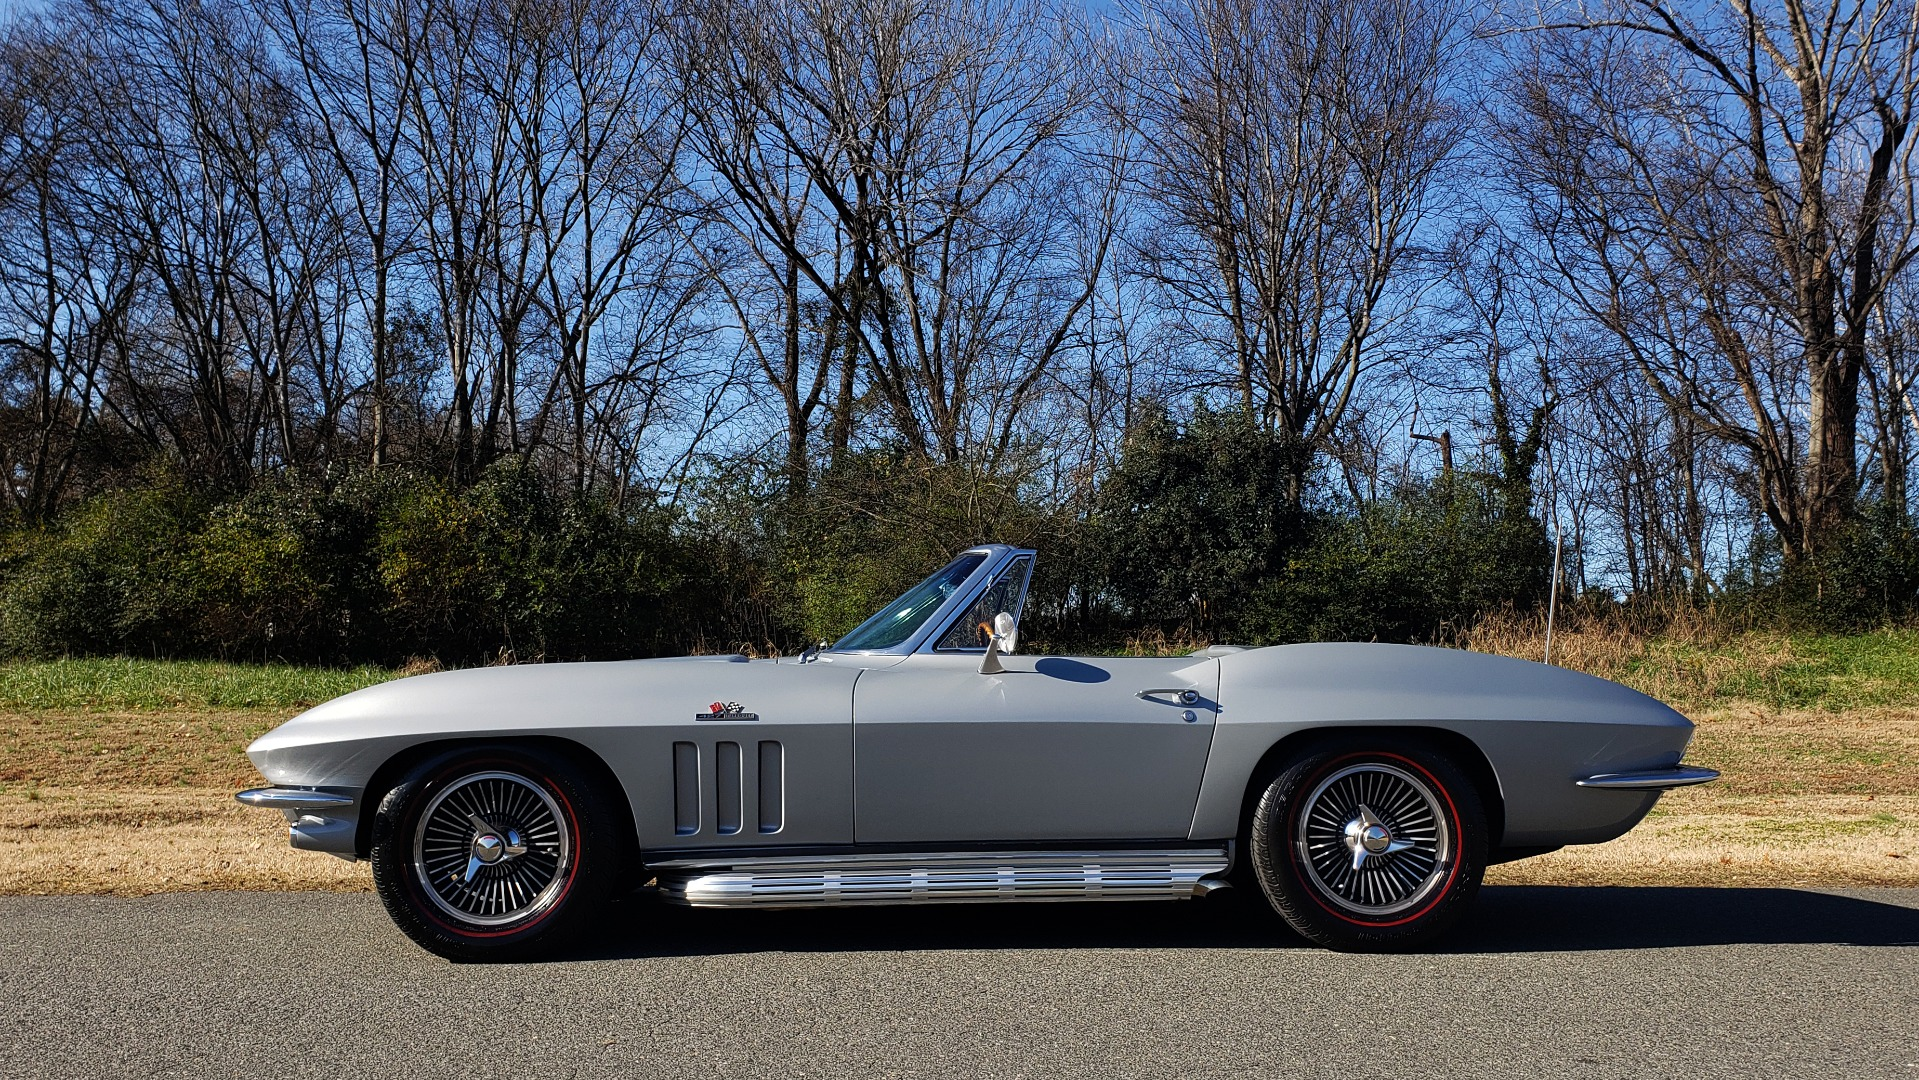 Used 1966 Chevrolet CORVETTE STINGRAY CONVERTIBLE 427 / 4-SPD / NUMBER MATCHING for sale Sold at Formula Imports in Charlotte NC 28227 23